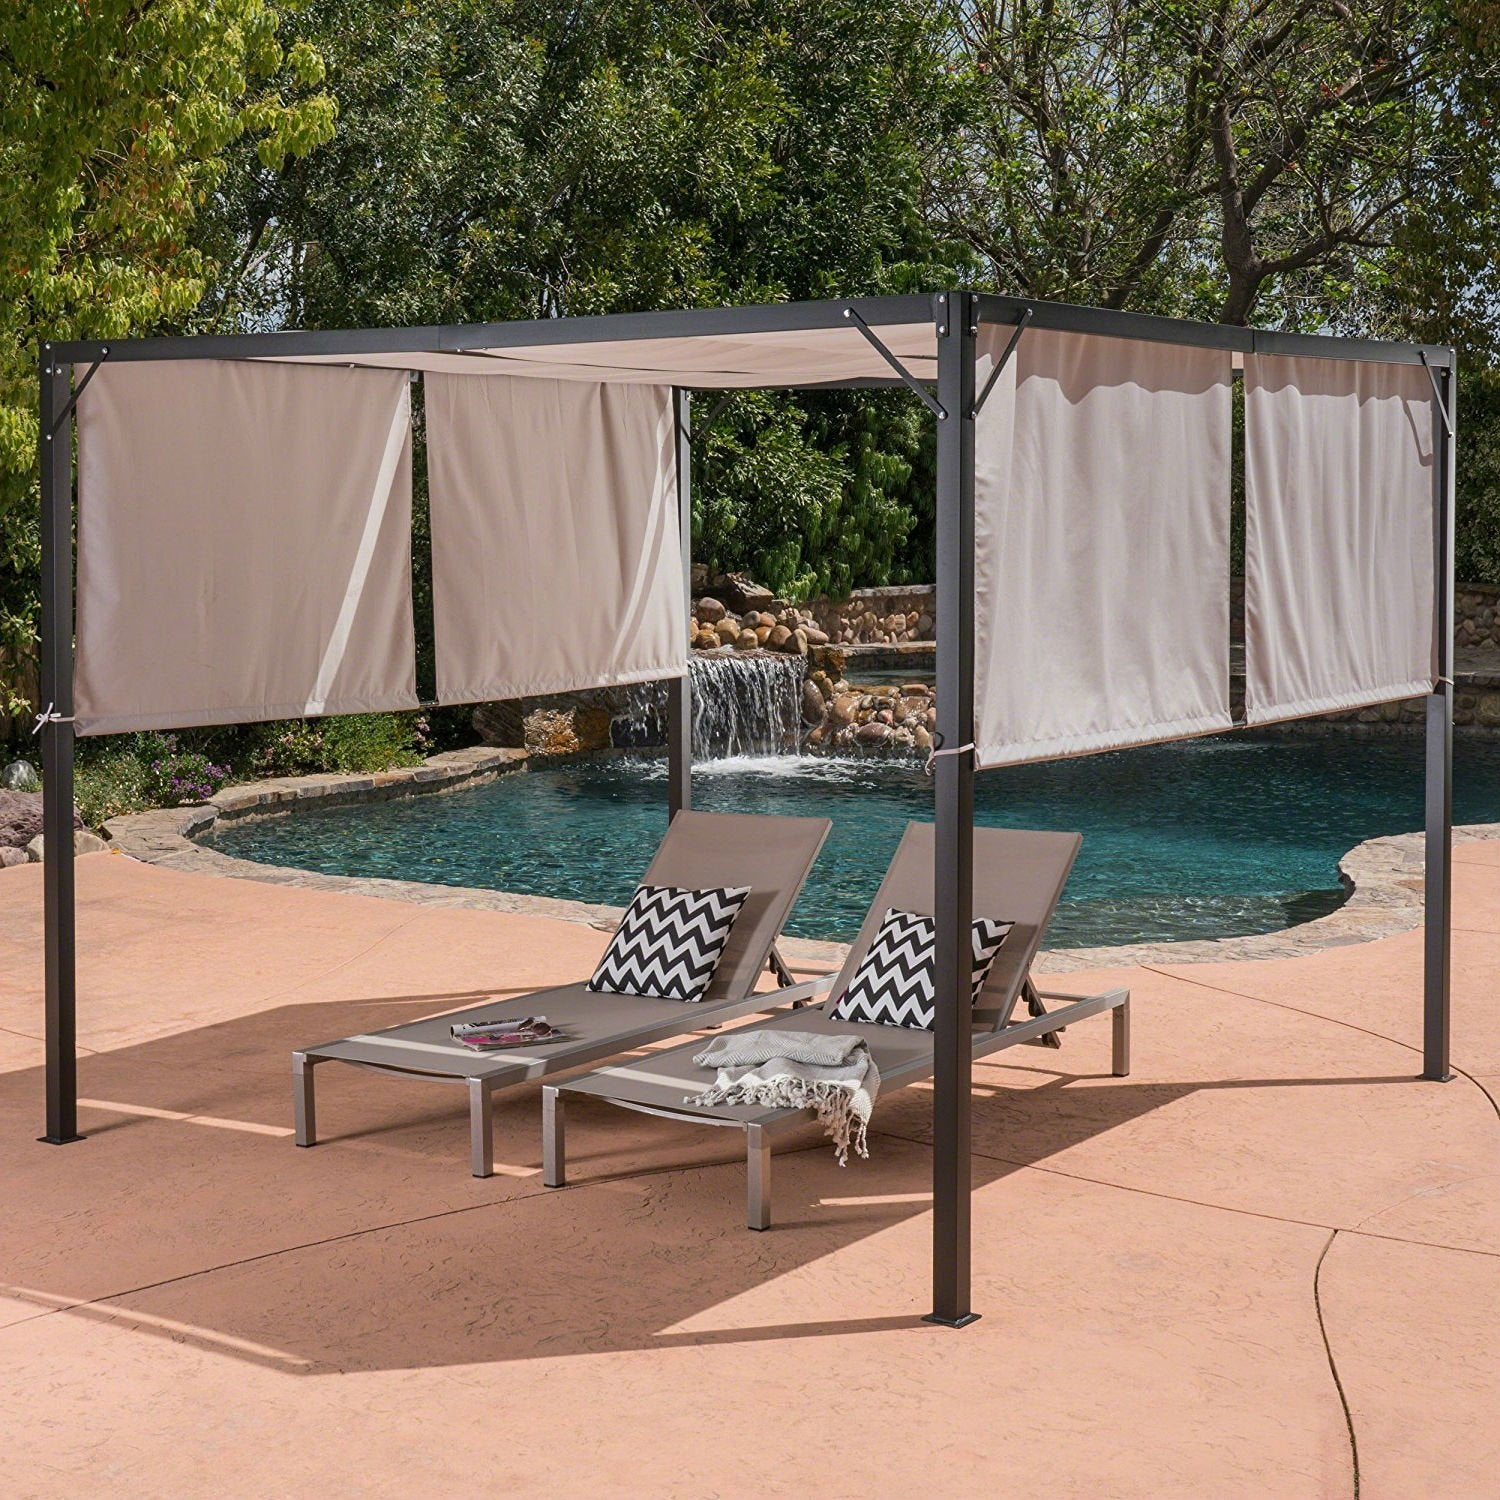 Heavy Duty Steel Frame Outdoor Gazebo Pergola with Beige Fabric Sun Shade